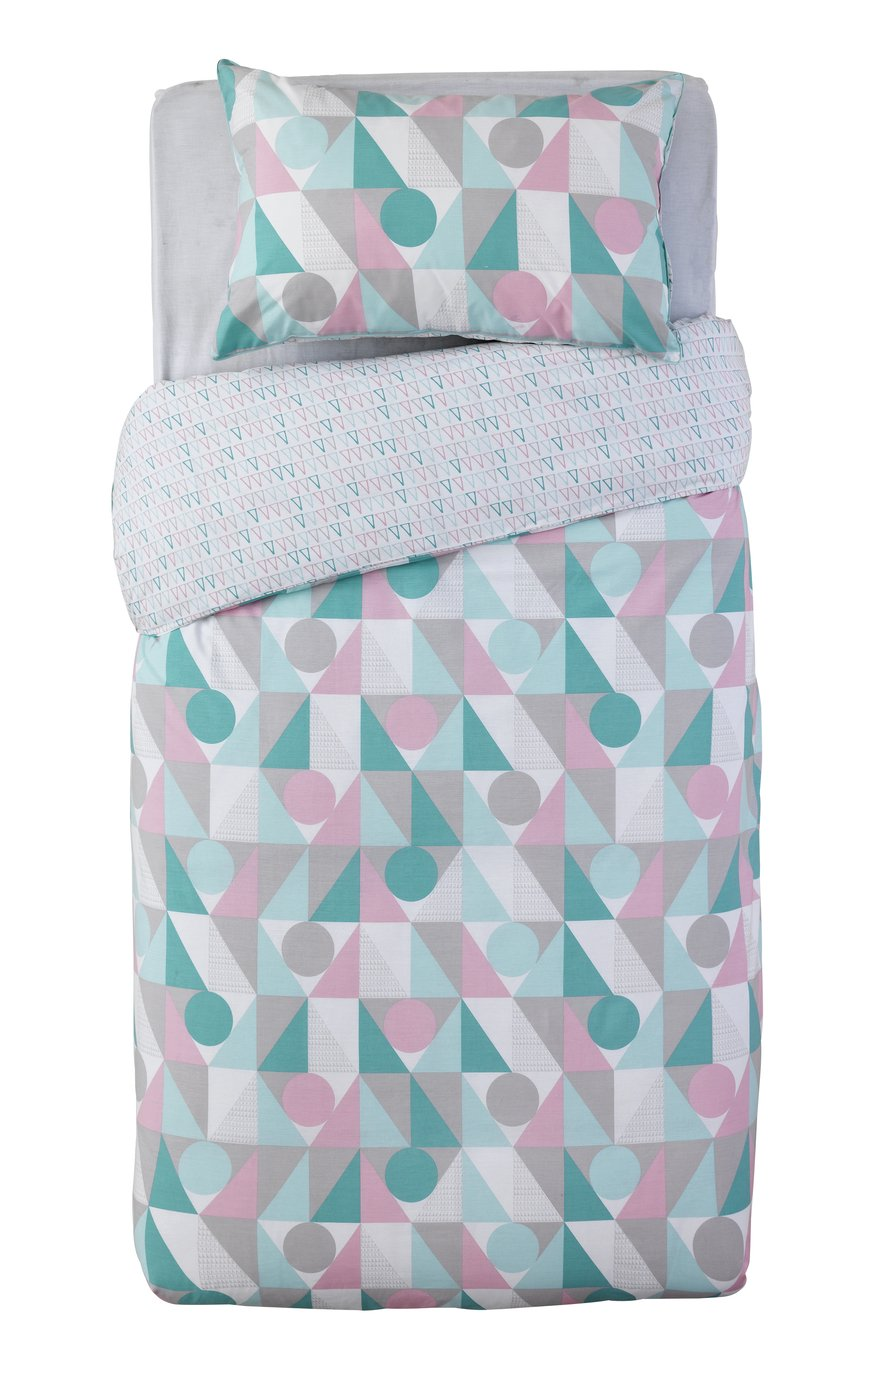 Sainsbury's Home Triangle Print Bedding Set - Single